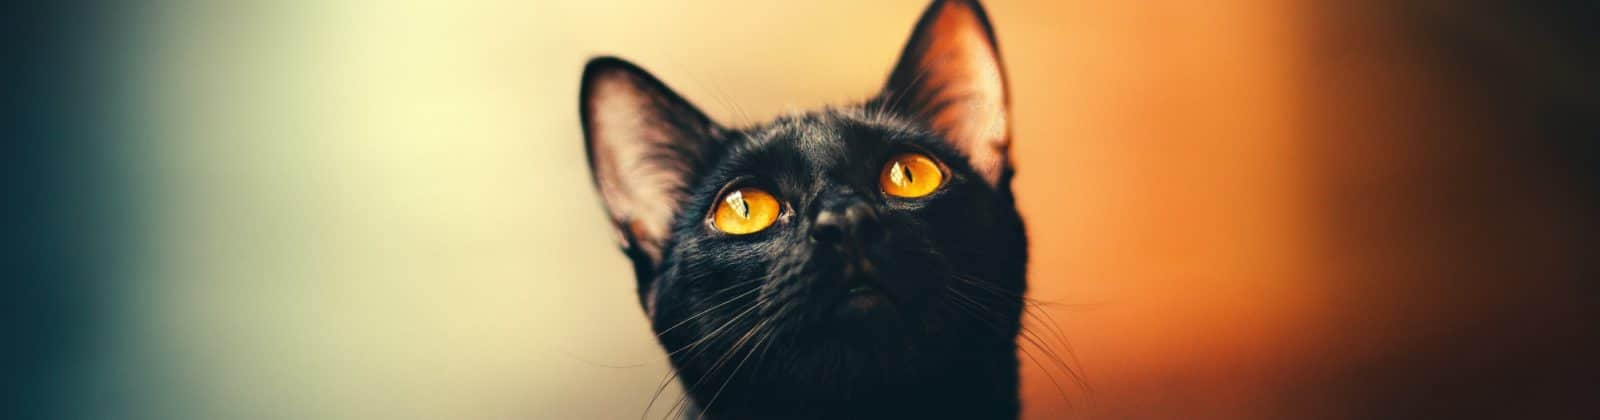 cats dogs superstitions myths